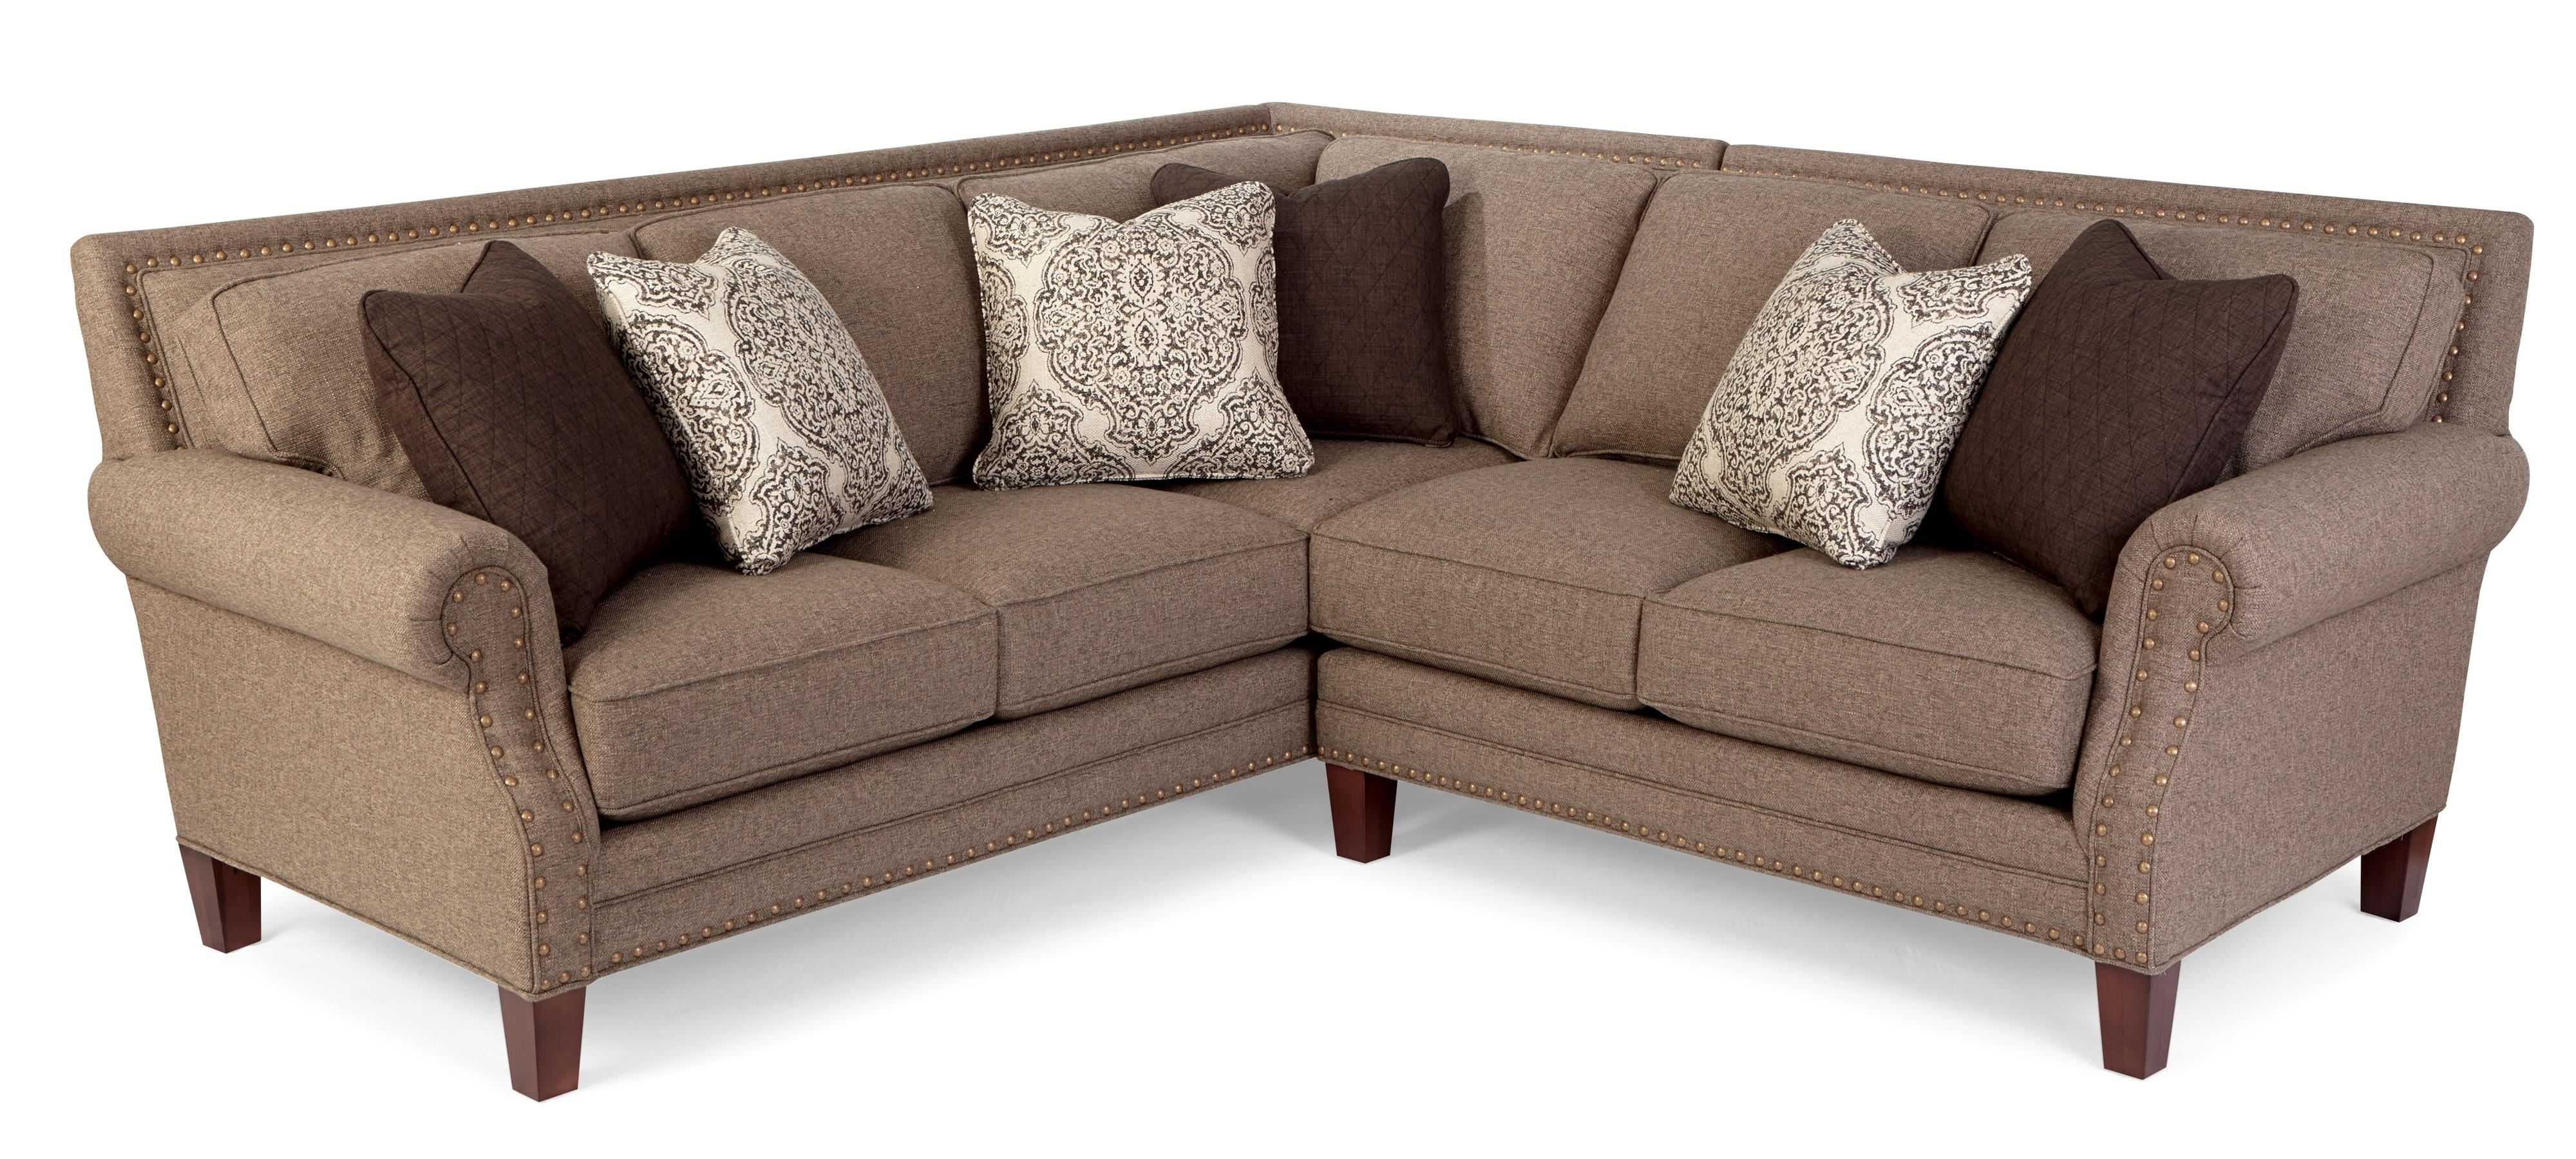 Two Piece Sectional Sofa With Rolled Arms And Light Brass Within Best And Newest Sectional Sofas With Nailheads (View 14 of 15)